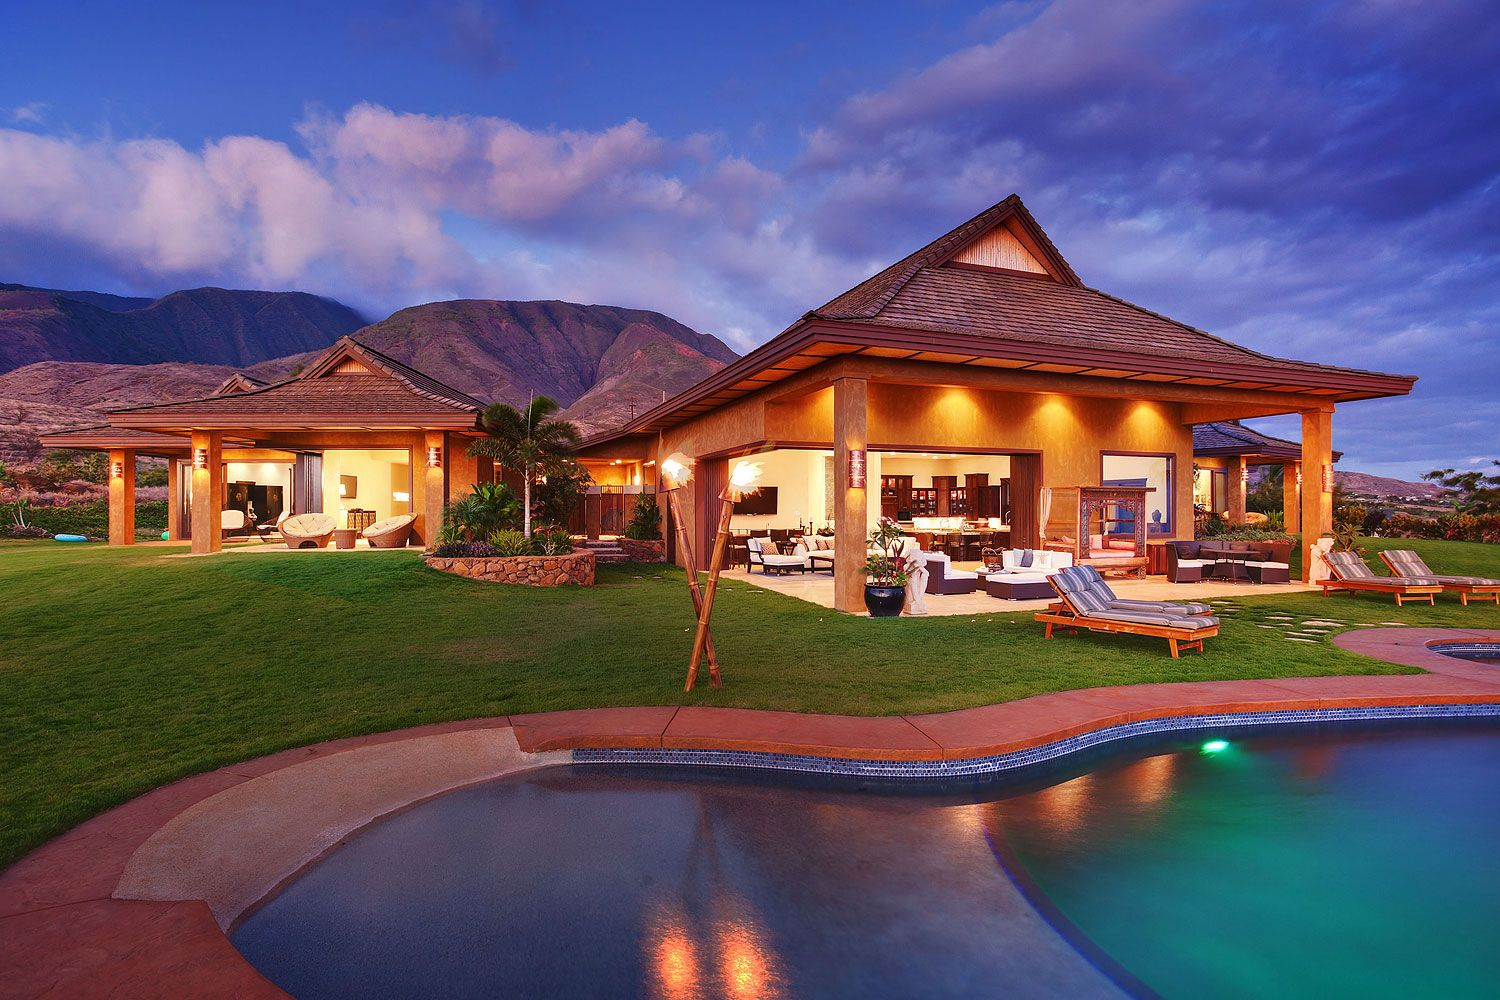 A Fabulous Maui Home Maui Real Estate Photography Http